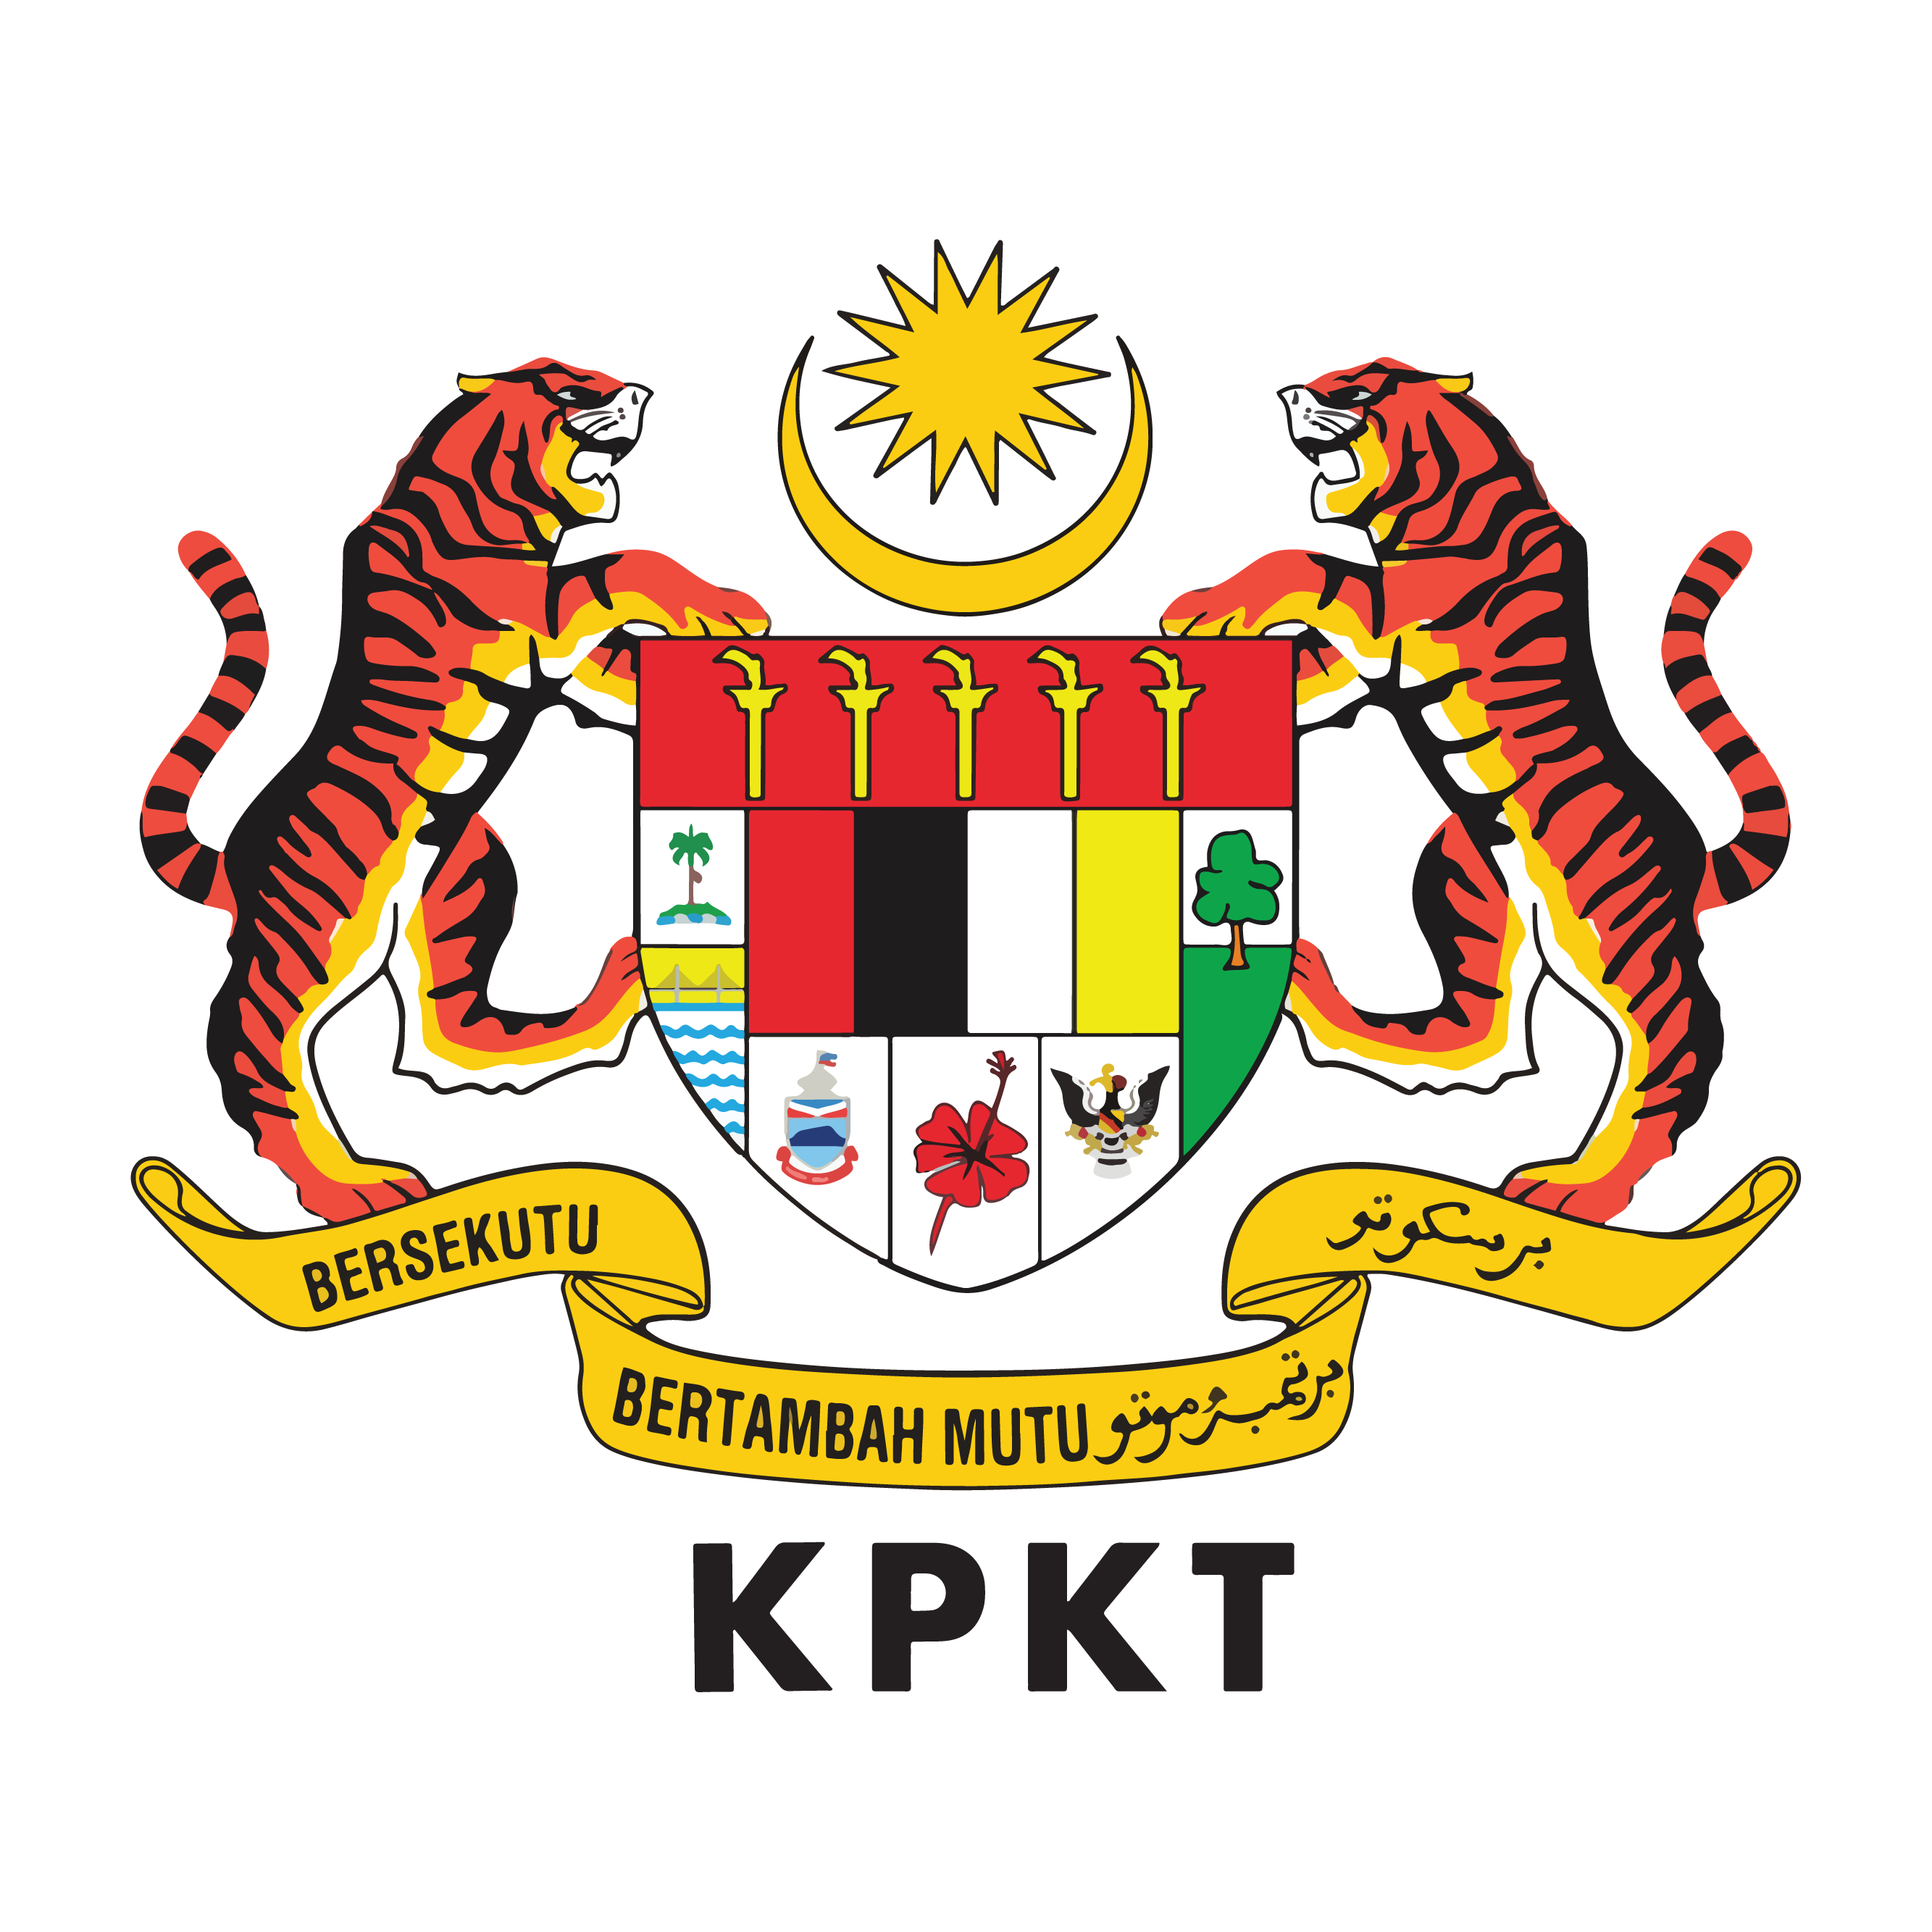 Ministry of Urban Wellbeing, Housing and Local Government (KPKT)